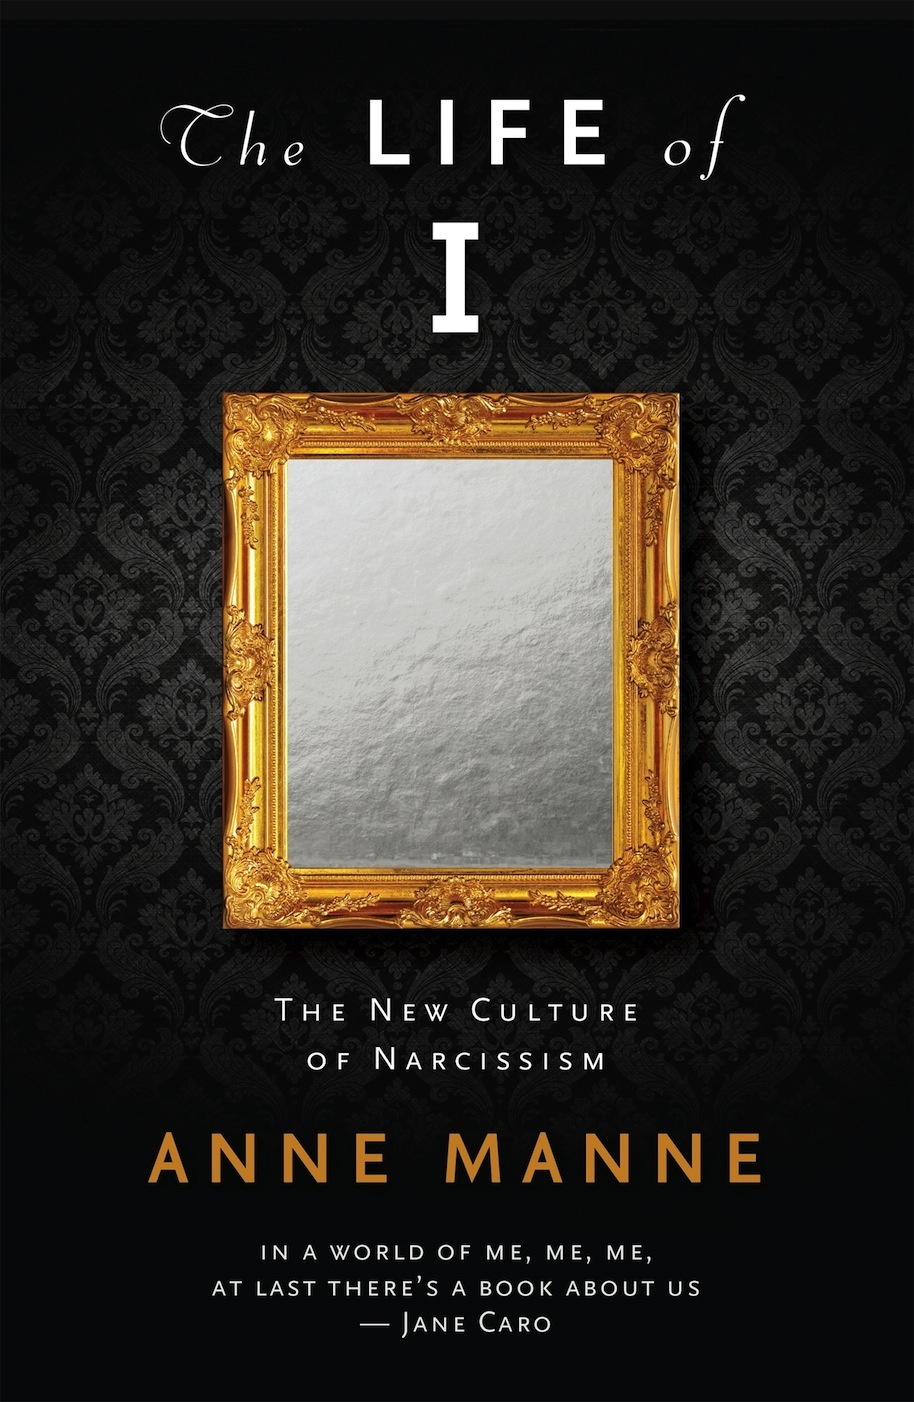 You might also be interested in Anne Manne's  Life of I,  Melbourne University Press, RRP $32.99, Ebook $19.99.